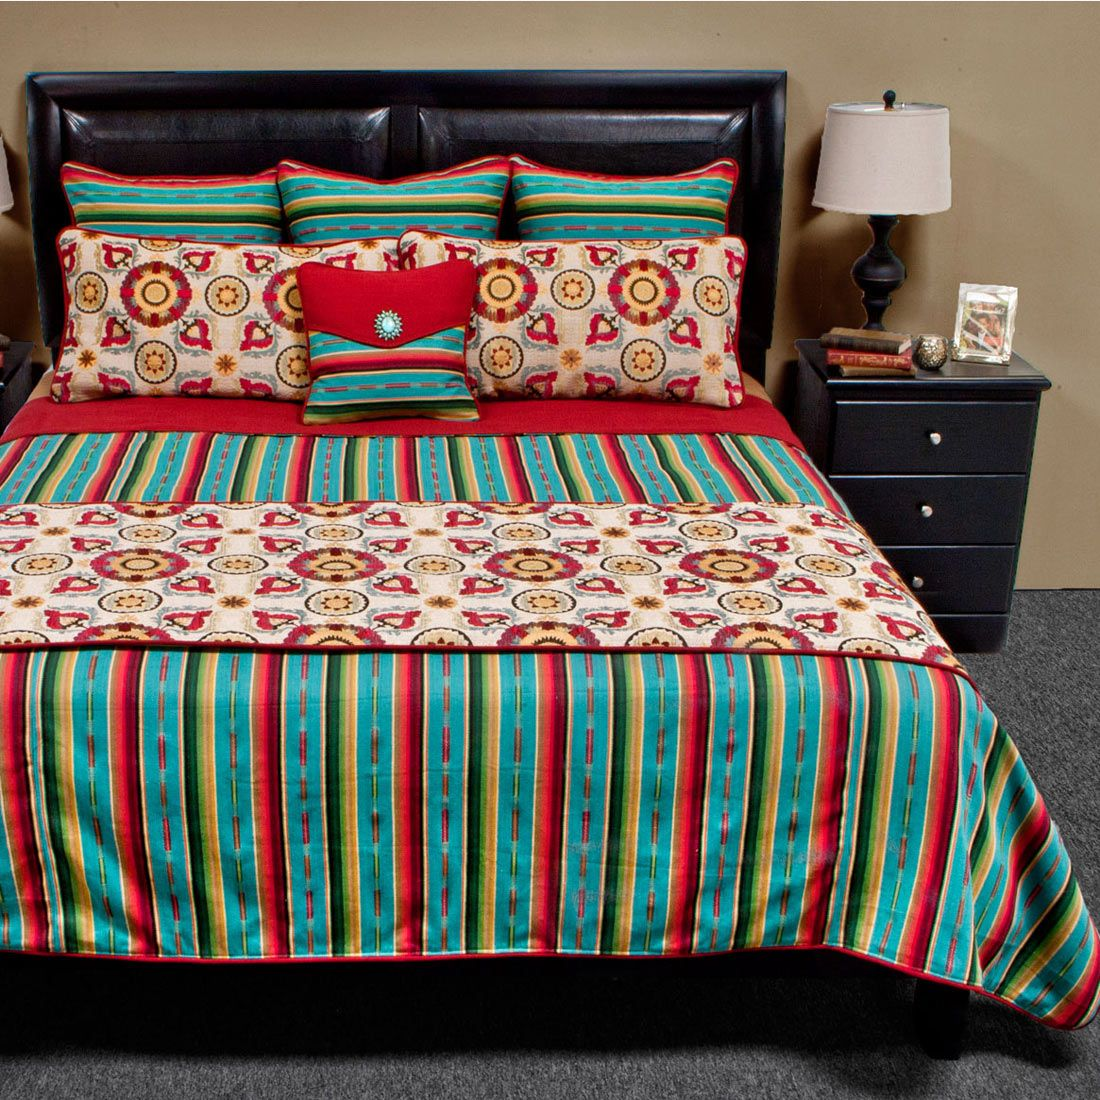 Laredo Turquoise Luxury Bed Set - King Plus